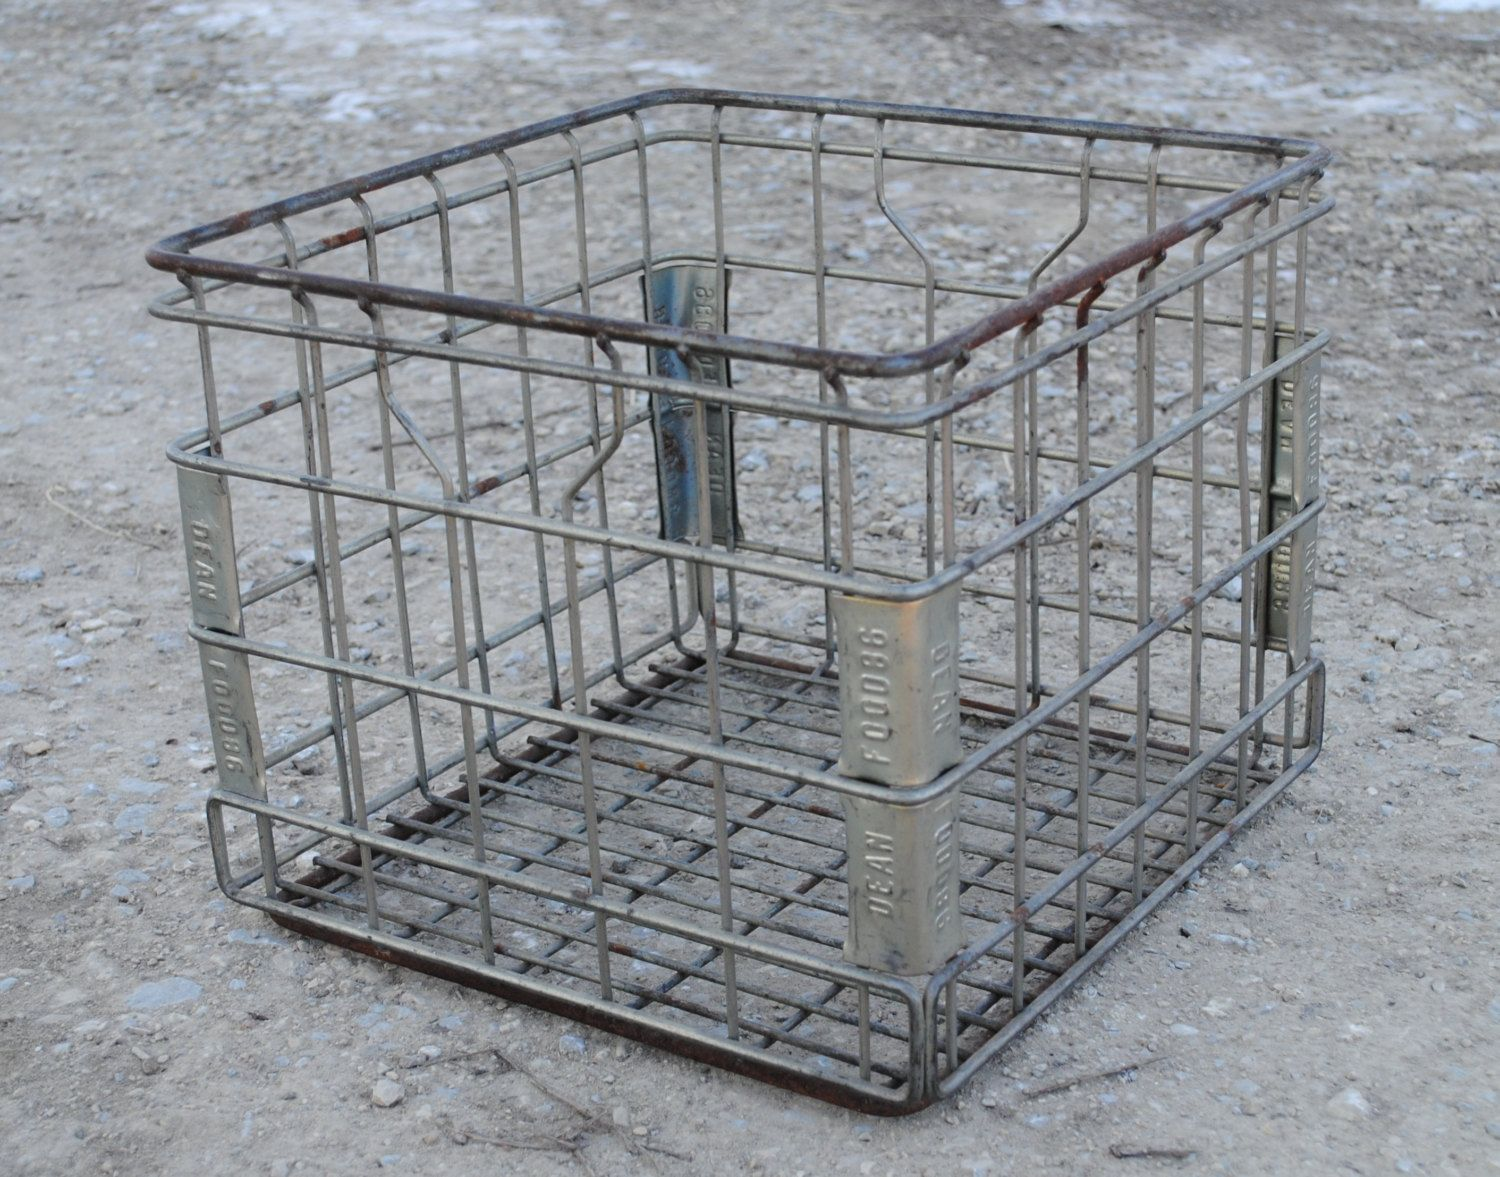 High Quality Vintage Metal Milk Crate Basket   Vintage Wire Metal Storage Basket  Industrial Metal Storage Crate.